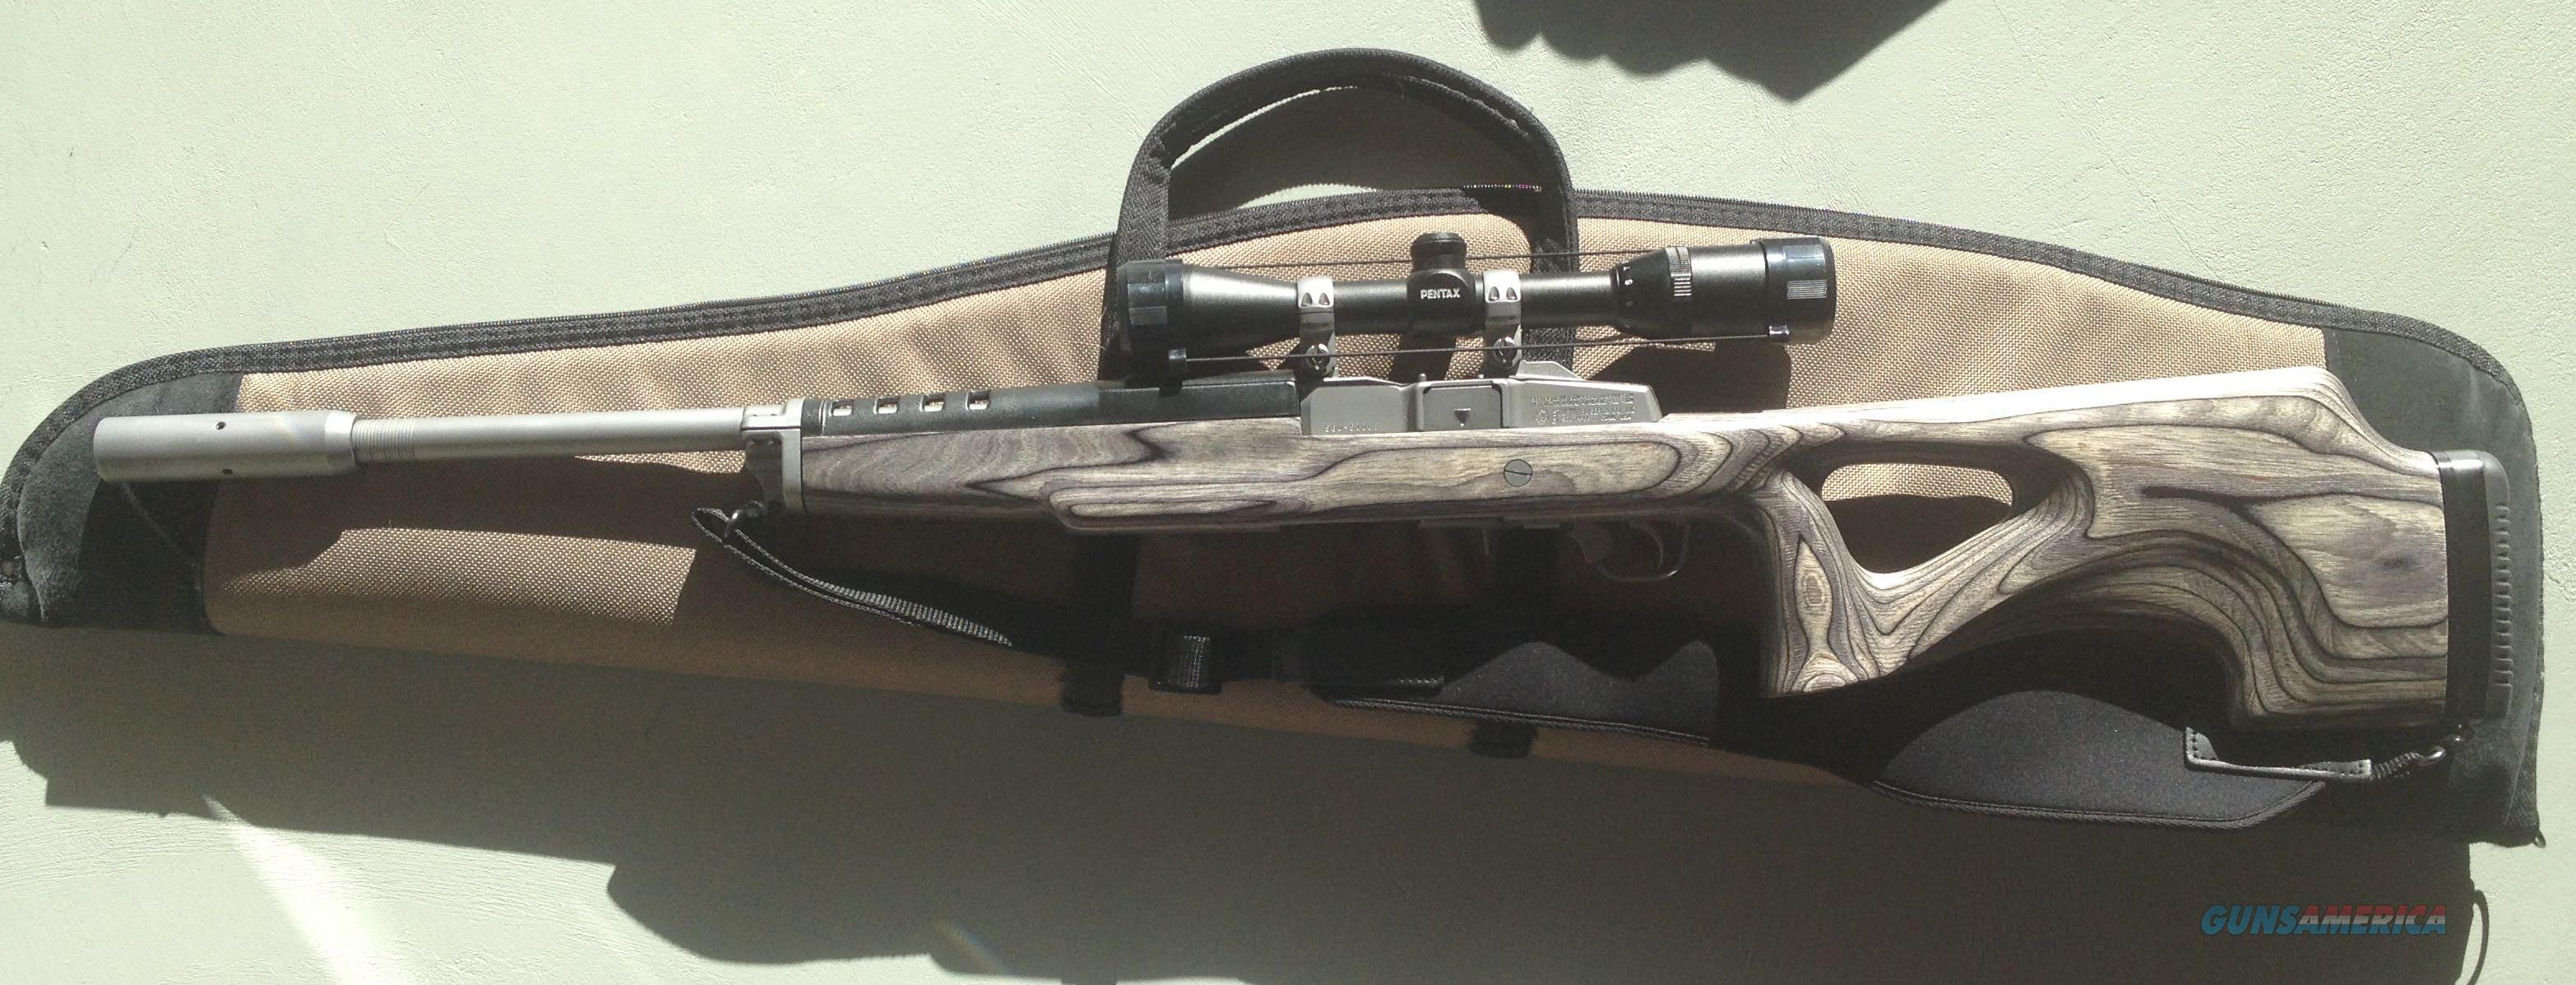 Ruger Mini-14 target 223 with Scope  Guns > Rifles > Ruger Rifles > Mini-14 Type